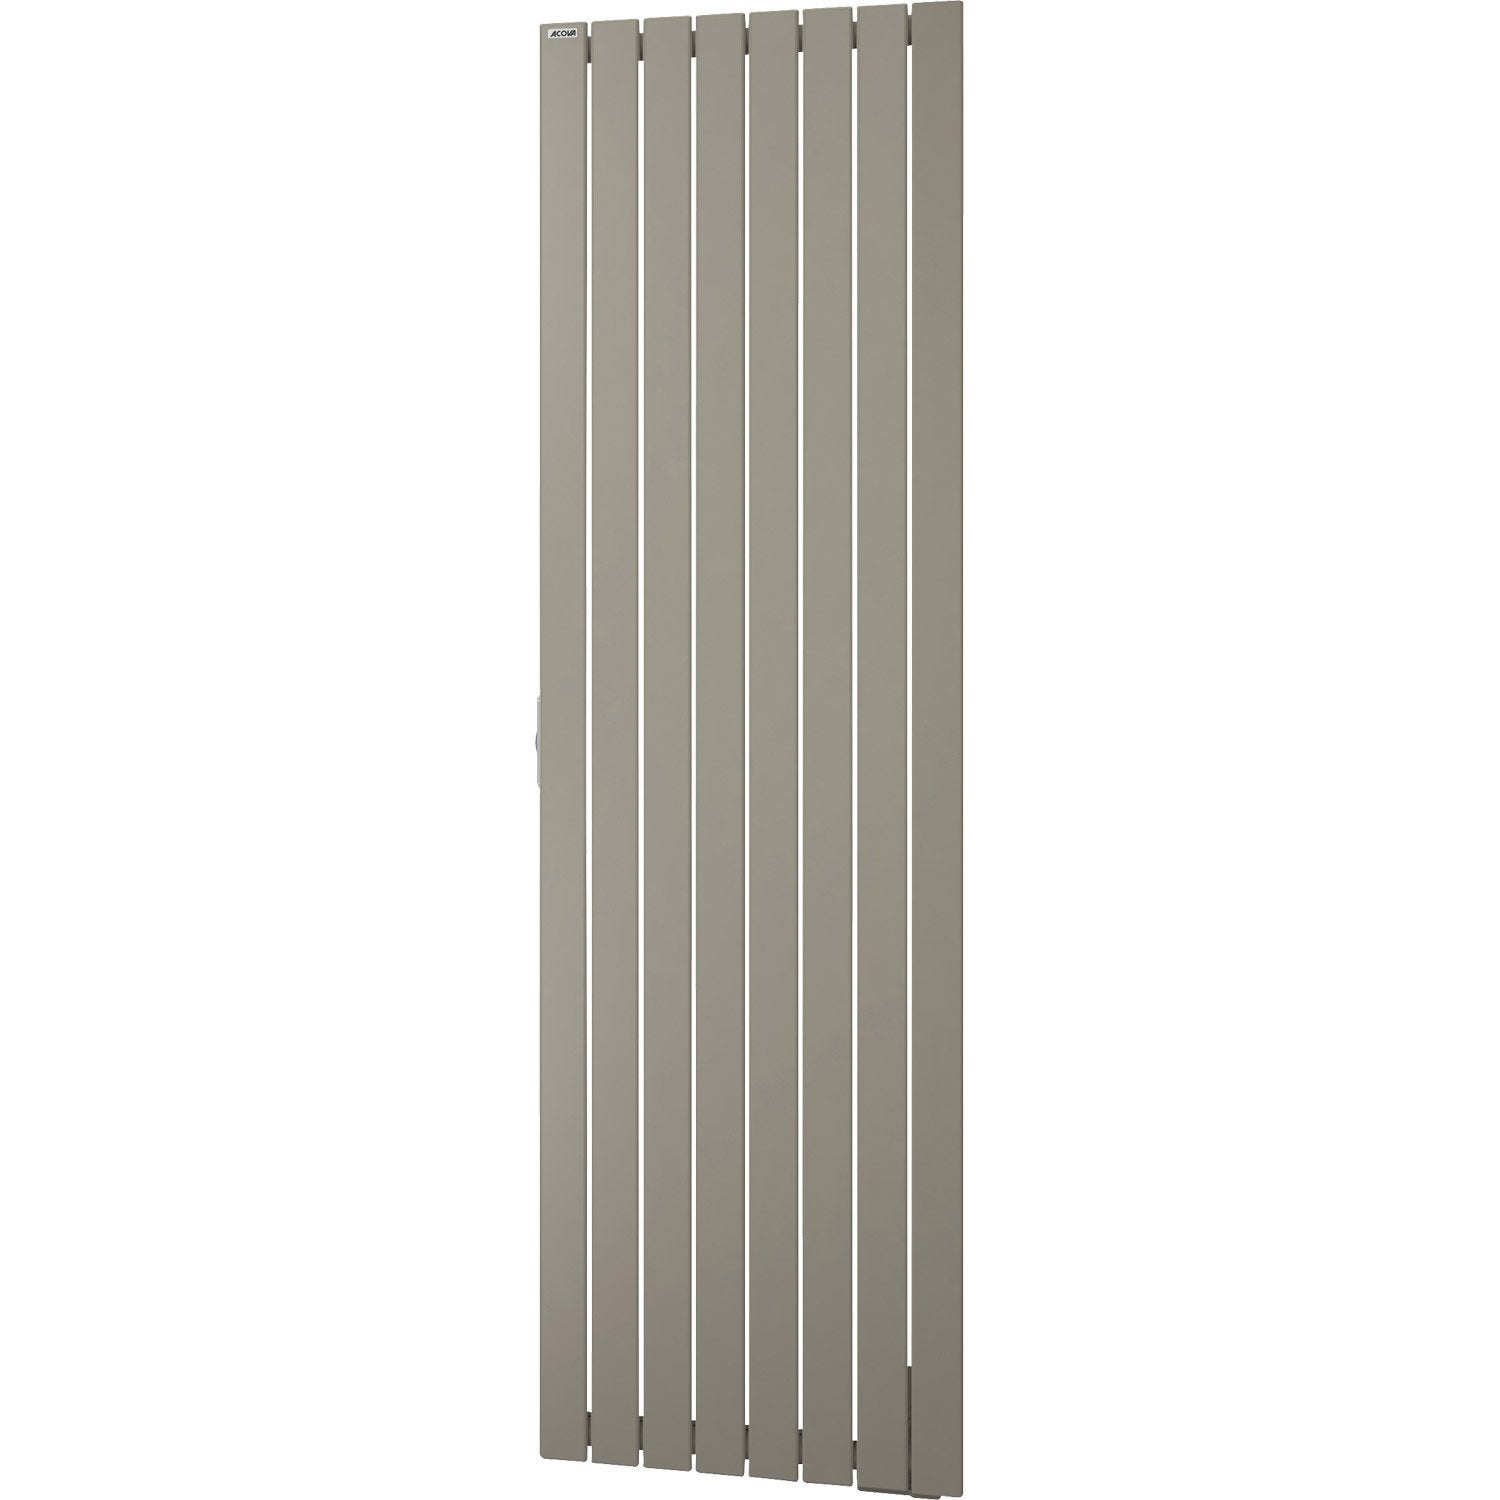 radiateur lectrique inertie fluide acova lina manattan vertical 1500 w leroy merlin. Black Bedroom Furniture Sets. Home Design Ideas